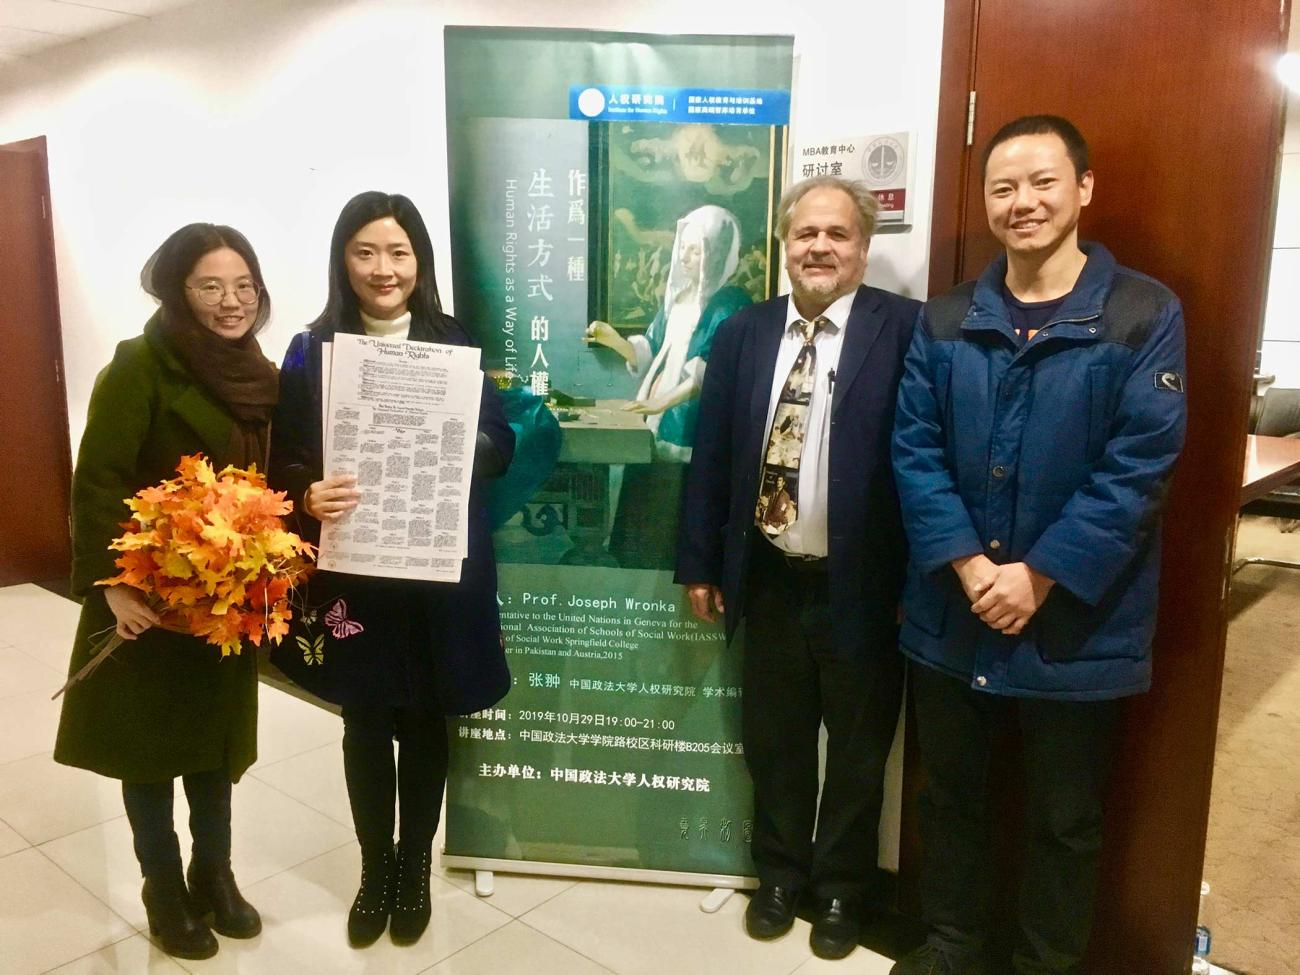 Springfield College Professor of Social Work Dr. Joseph Wronka recently presented a keynote address and lecture at the Chinese University of Political Science and Law in China.